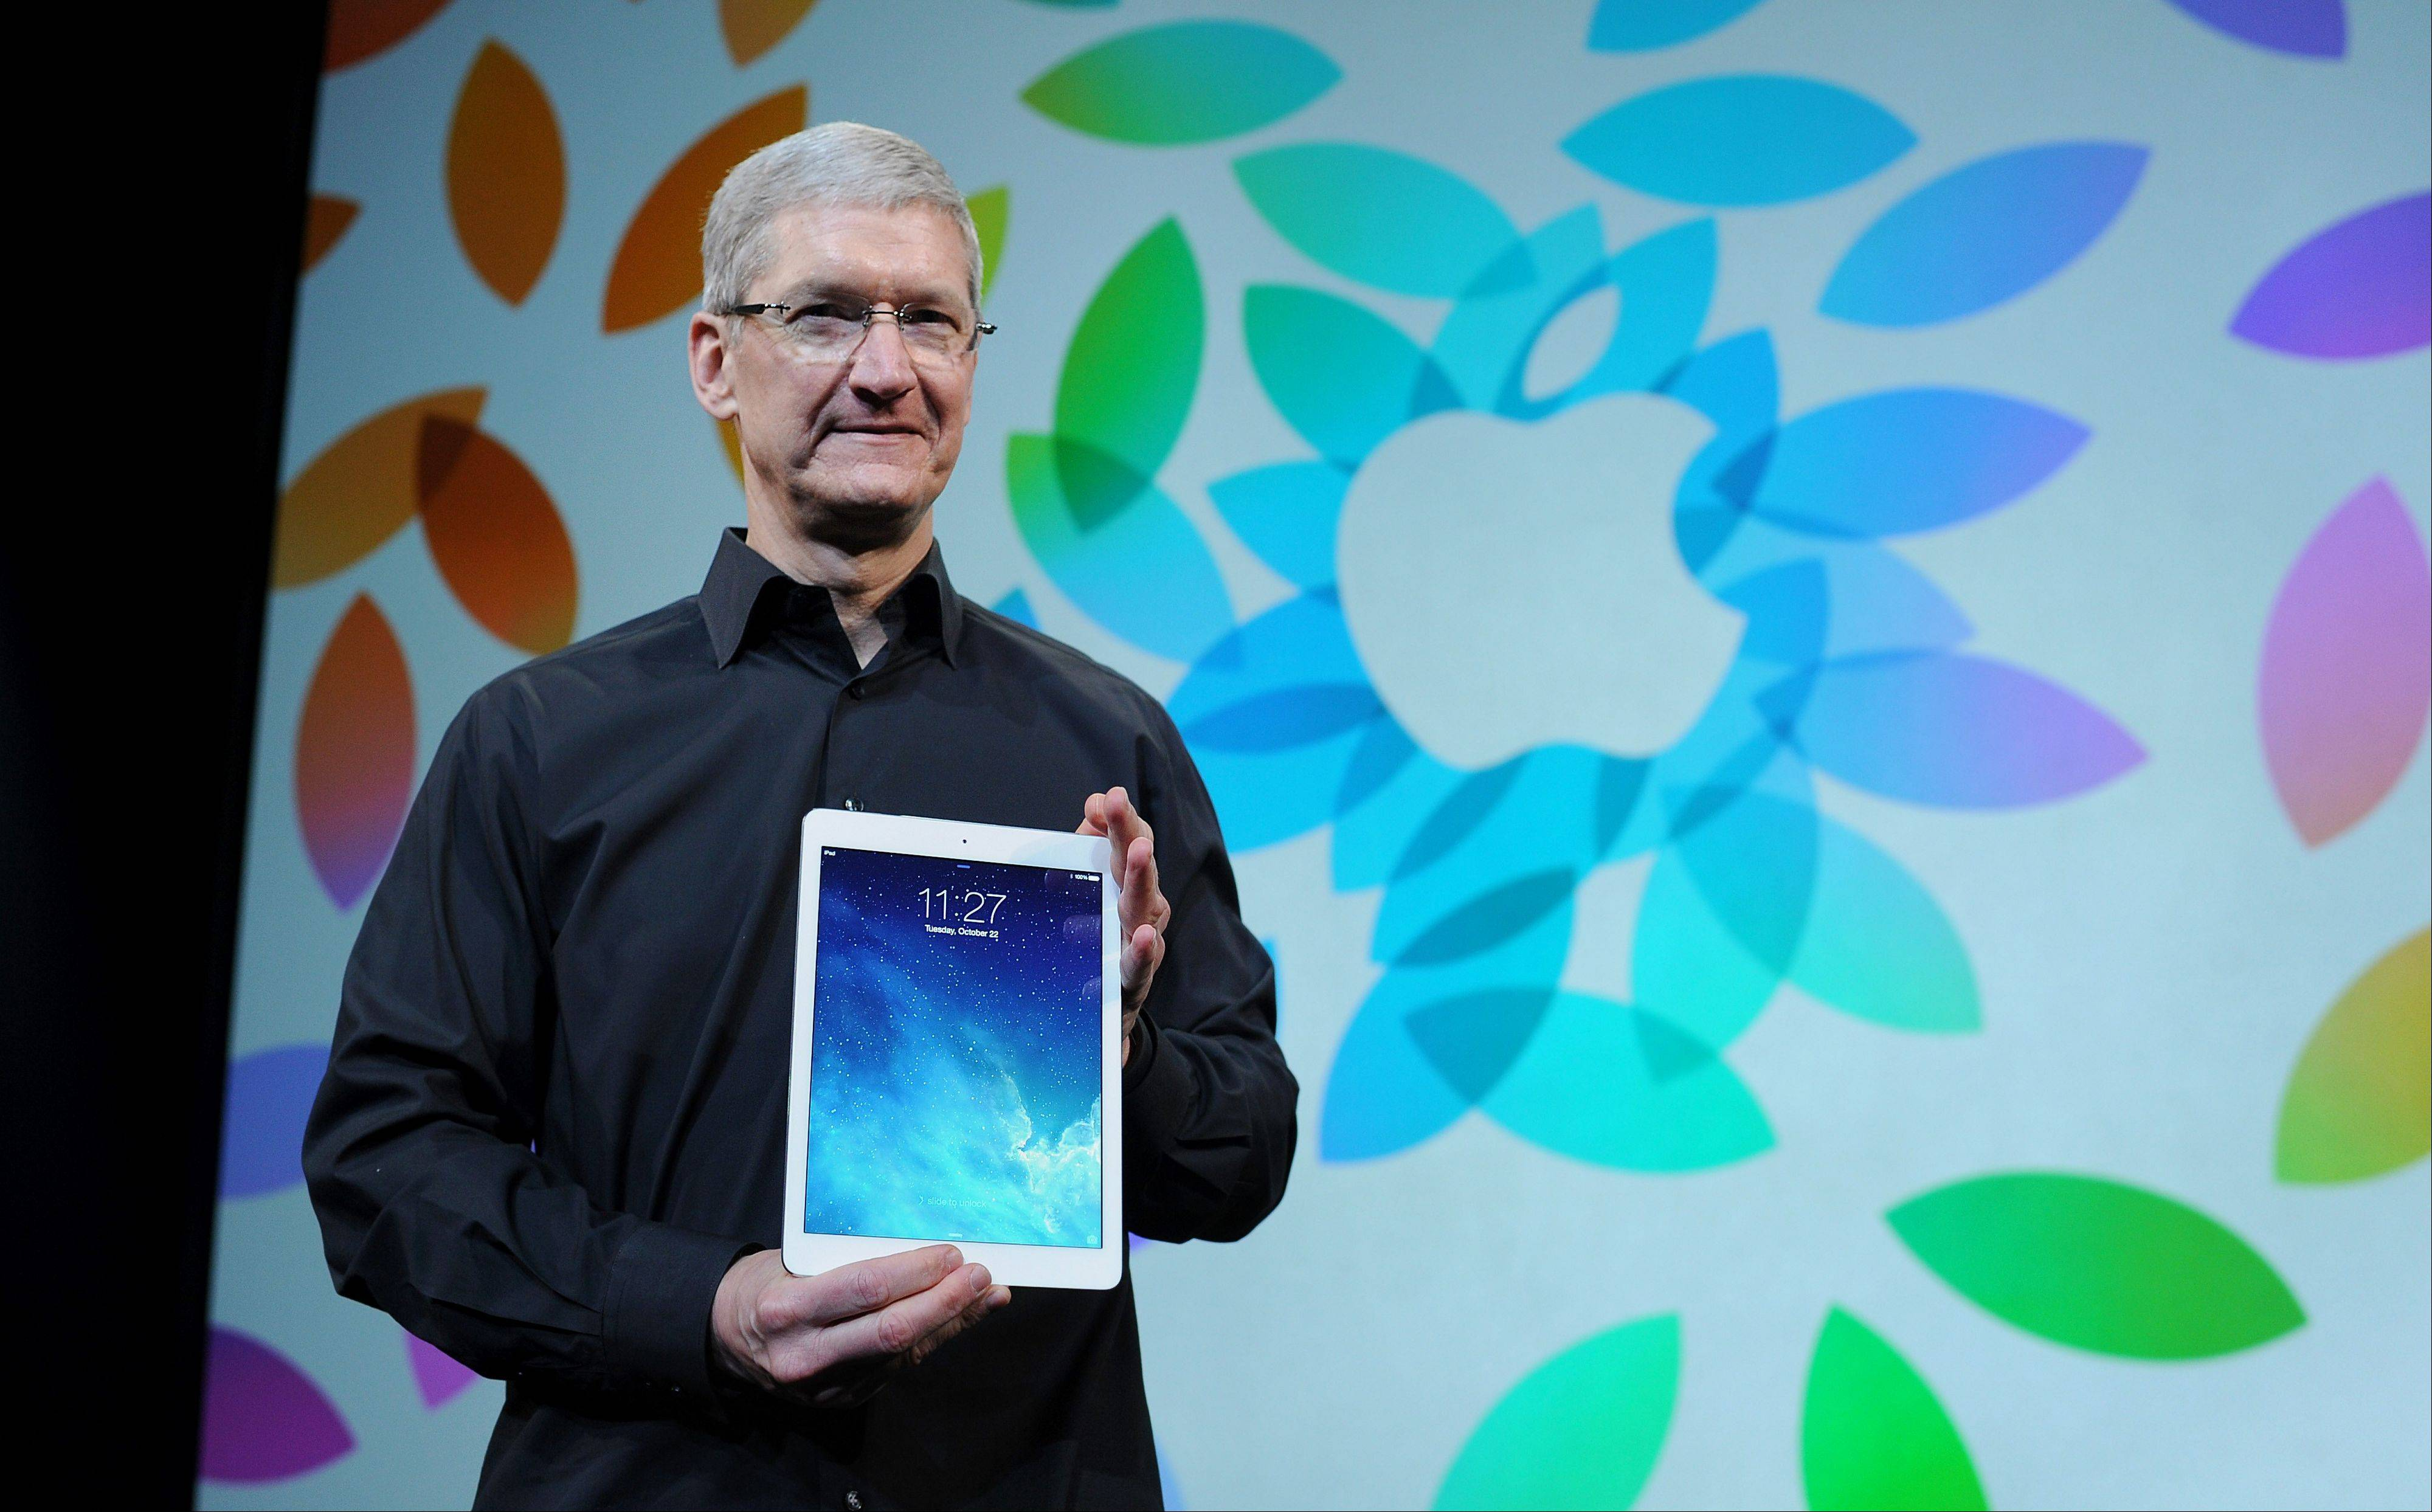 Tim Cook, chief executive officer of Apple Inc., displays the iPad Air during a press event at the Yerba Buena Center in San Francisco. Apple Inc. introduced new iPads in time for holiday shoppers, as it battles to stay ahead of rivals in the increasingly crowded market for tablet computers.